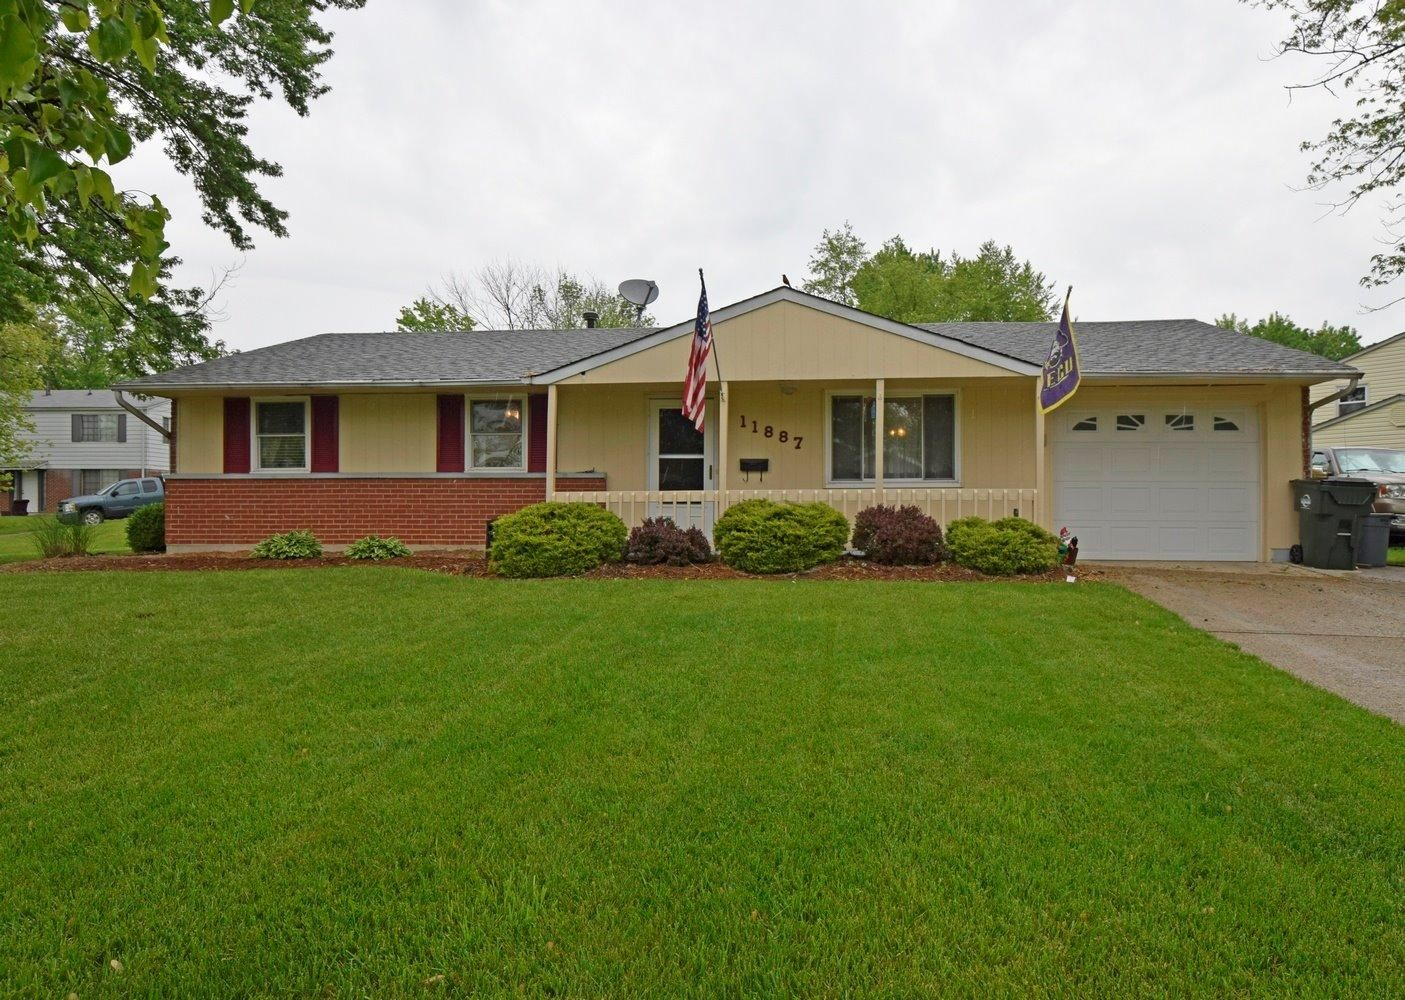 This property is listed at $119,900. Picture perfect 3BR/2BA Ranch with new laminate flooring throughout. Large rooms, beautiful yard with large shed, front porch, garage and additional parking pad next to house. Great cul-de-sac location! 11887 Algiers Dr Sharonville OH 45246 (MLS# 1493811) - Comey & Shepherd Realtors